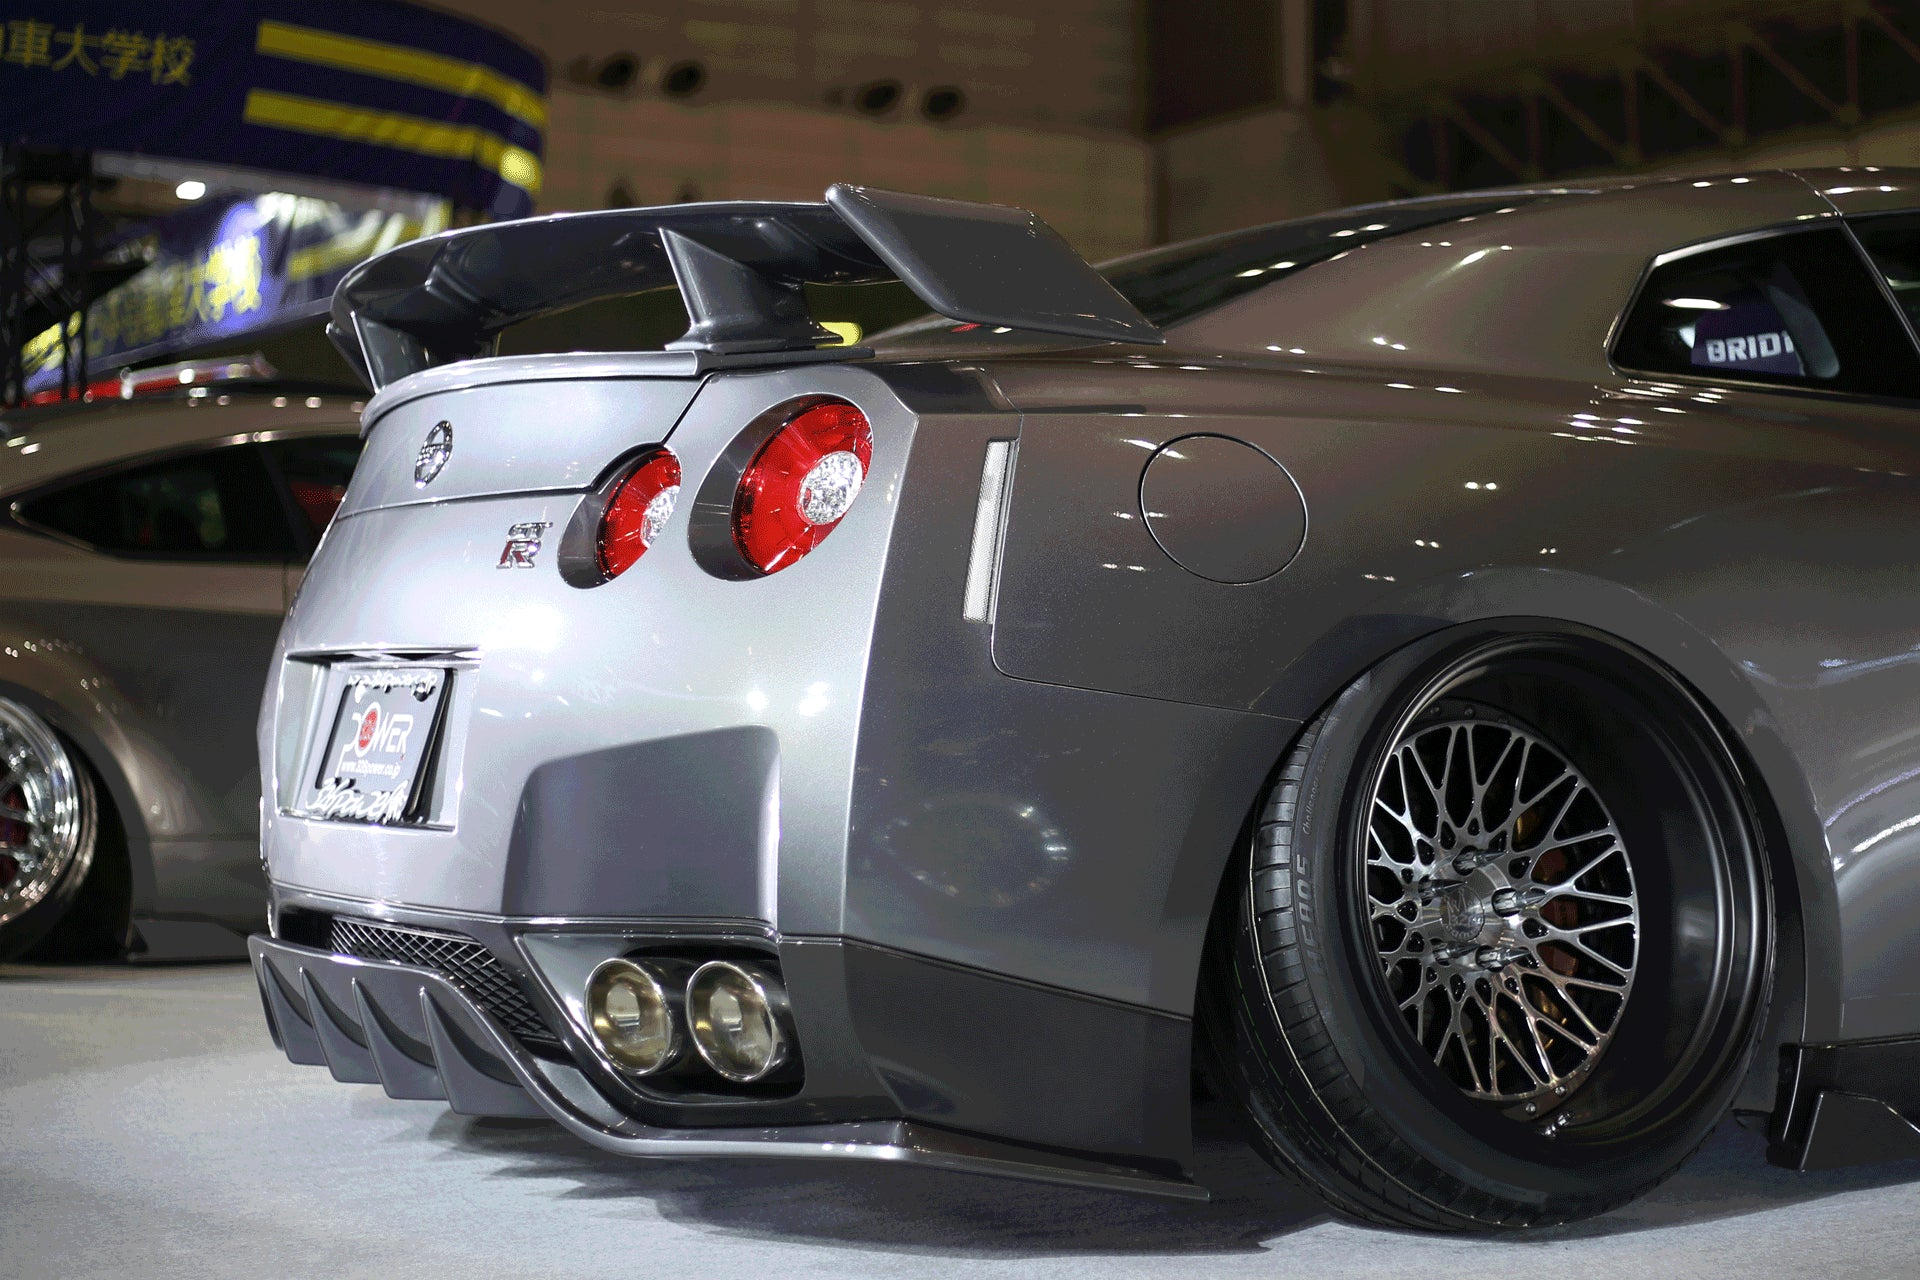 326POWER 3D☆STAR Lip Kit for Nissan R35 GT-R